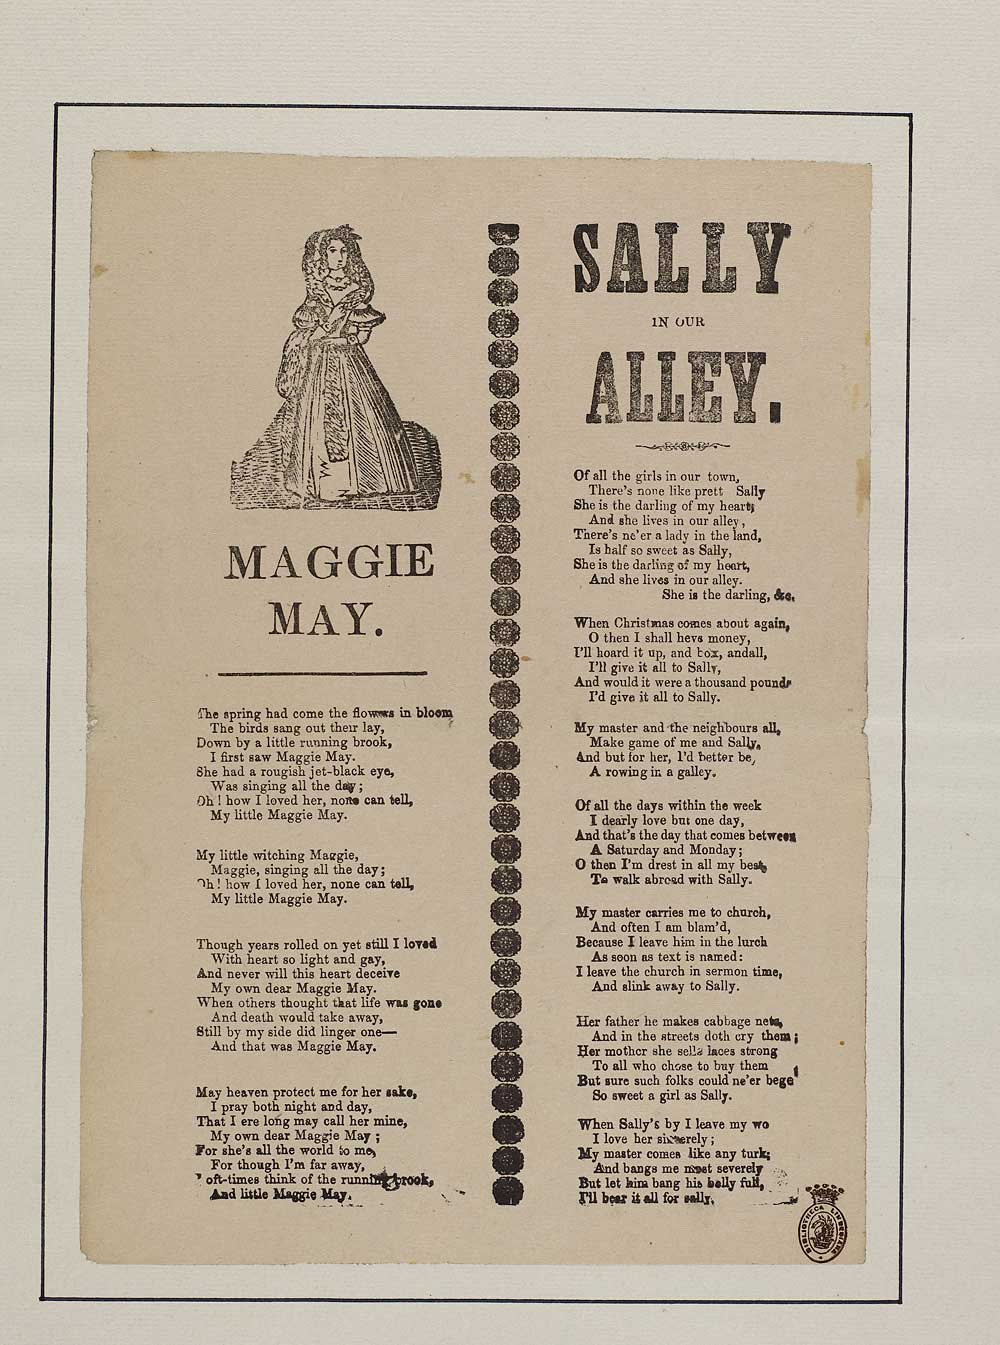 Maggie May - Courtship & marriage - English ballads